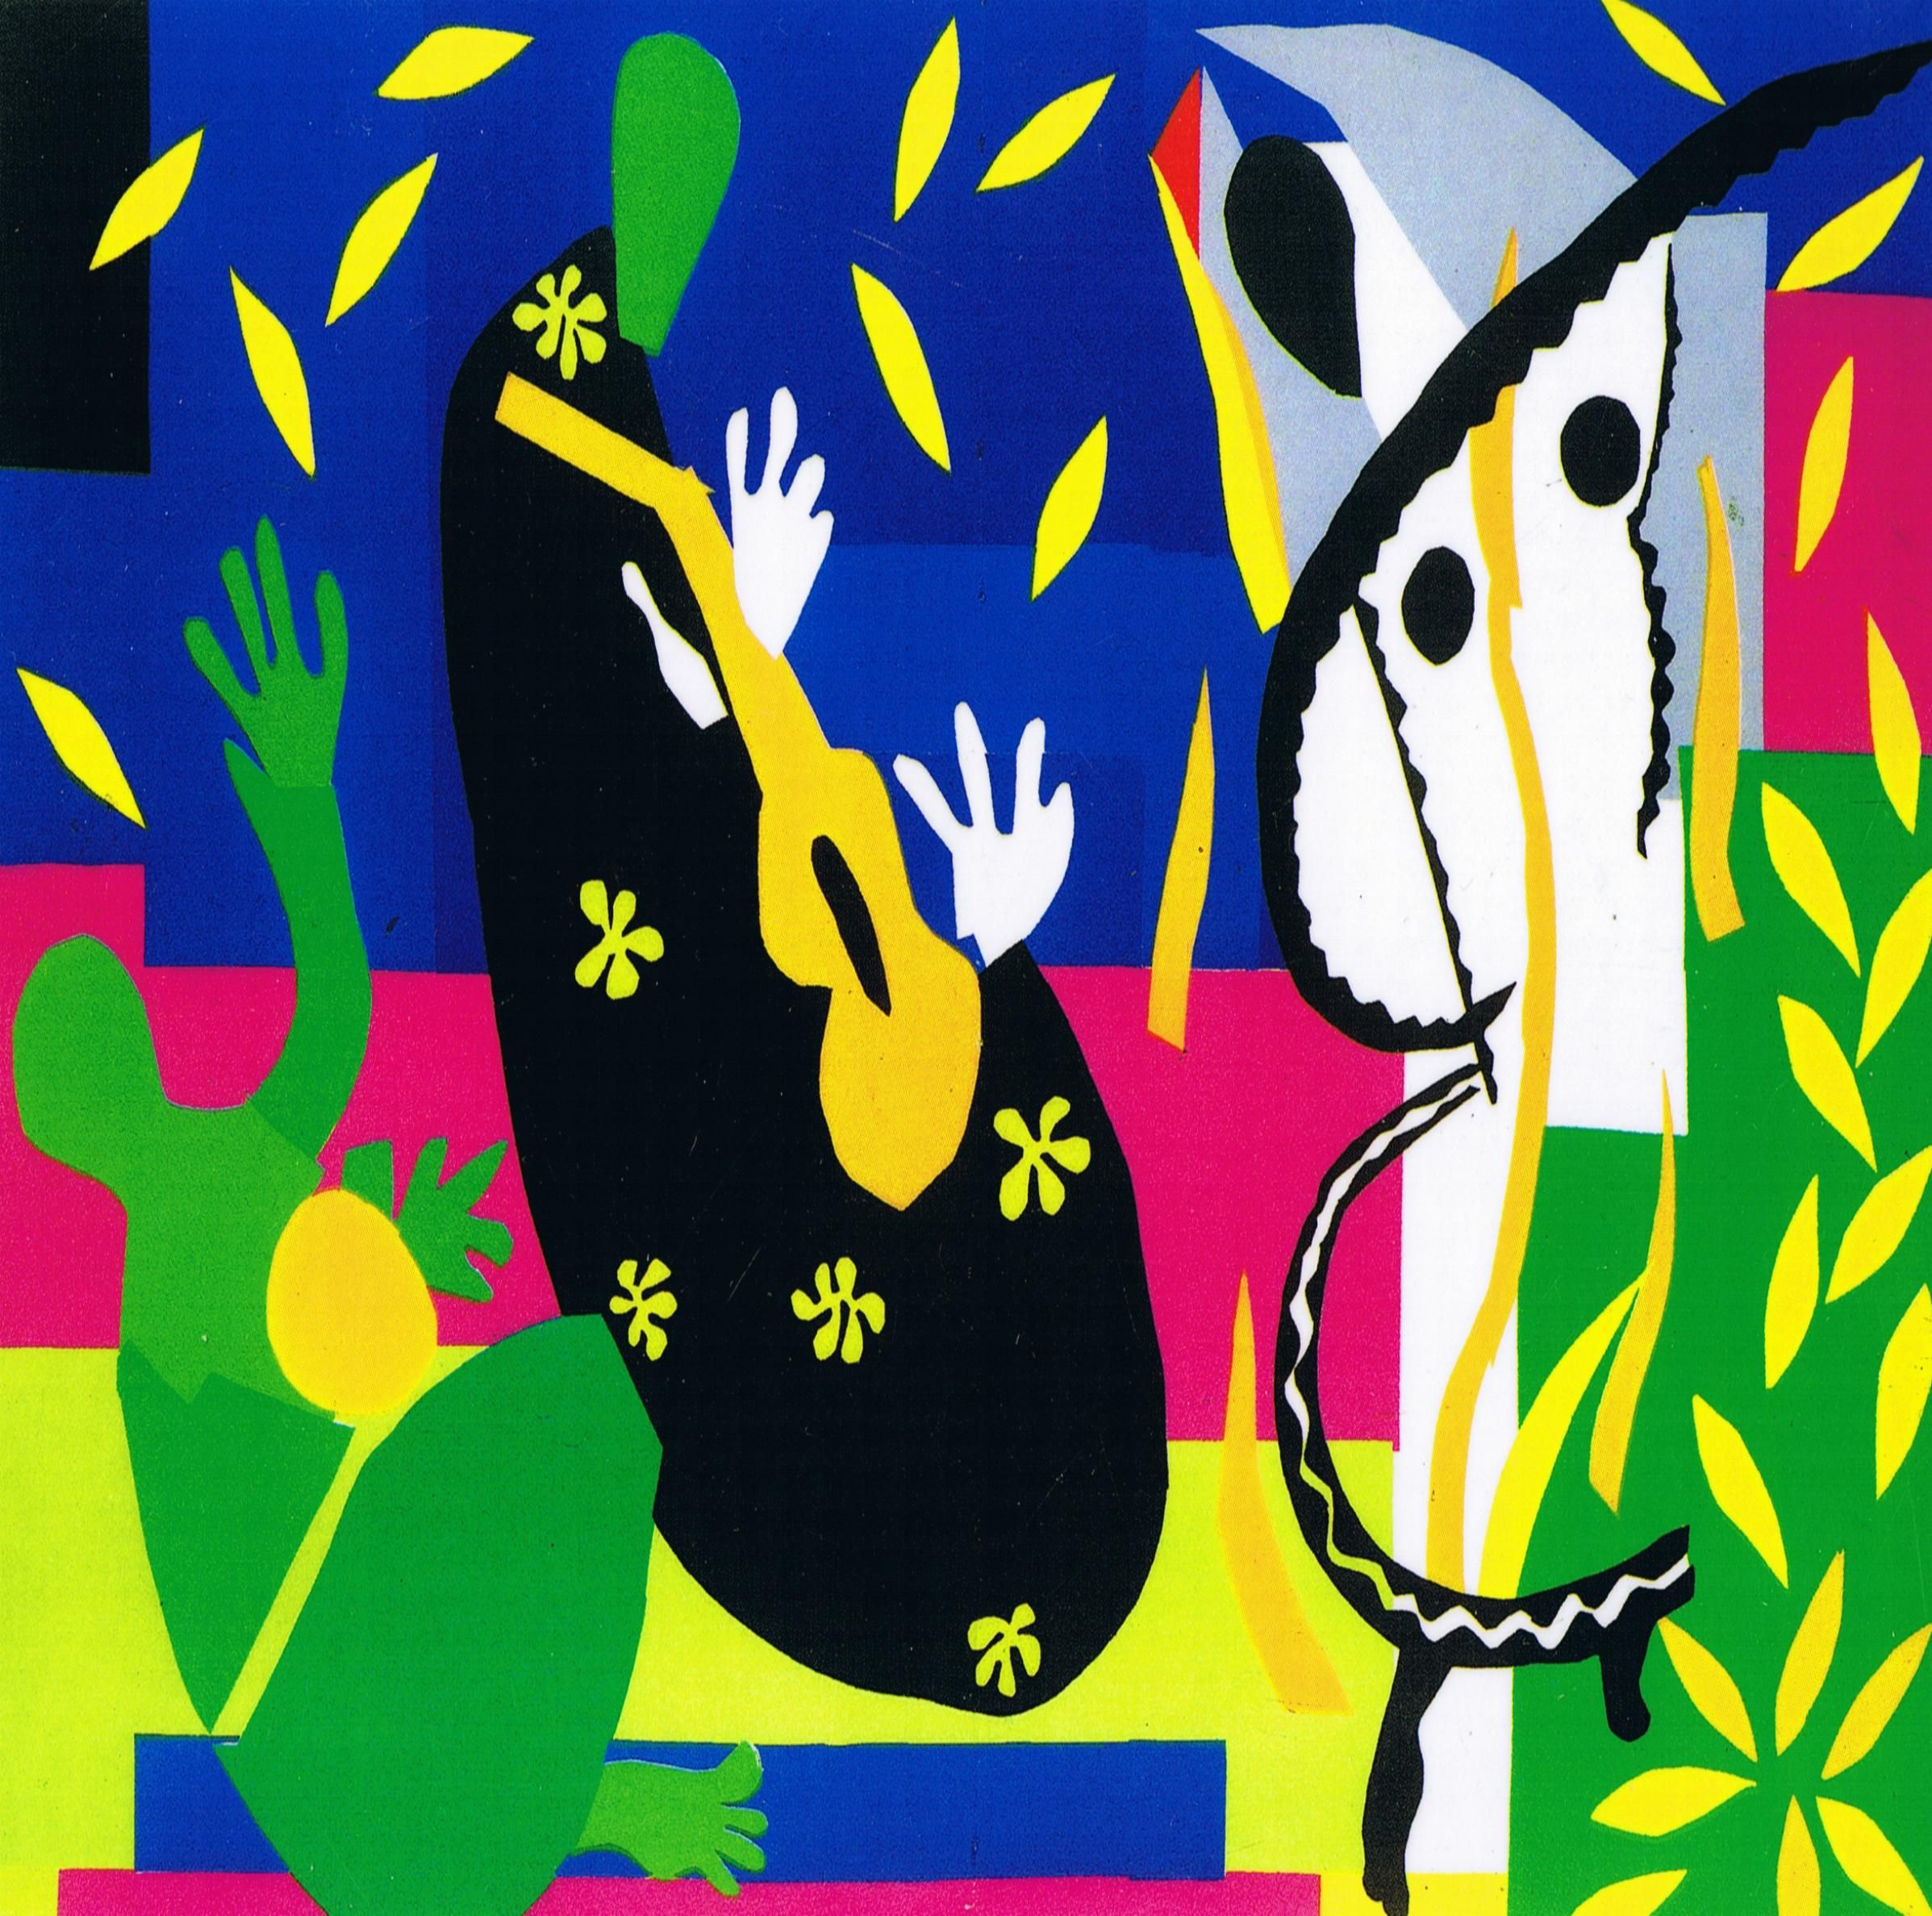 the life of the greatest colorists henri matisse A great inspiration colourist of the 20th century featured image: joy of life (le bonheur de vivre) (1905-06) what i dream of is an art of balance, of purity and serenity, devoid of in the light of henri matisse's birthday on the 31st here are some of my favourite paintings and a bit of text about them.